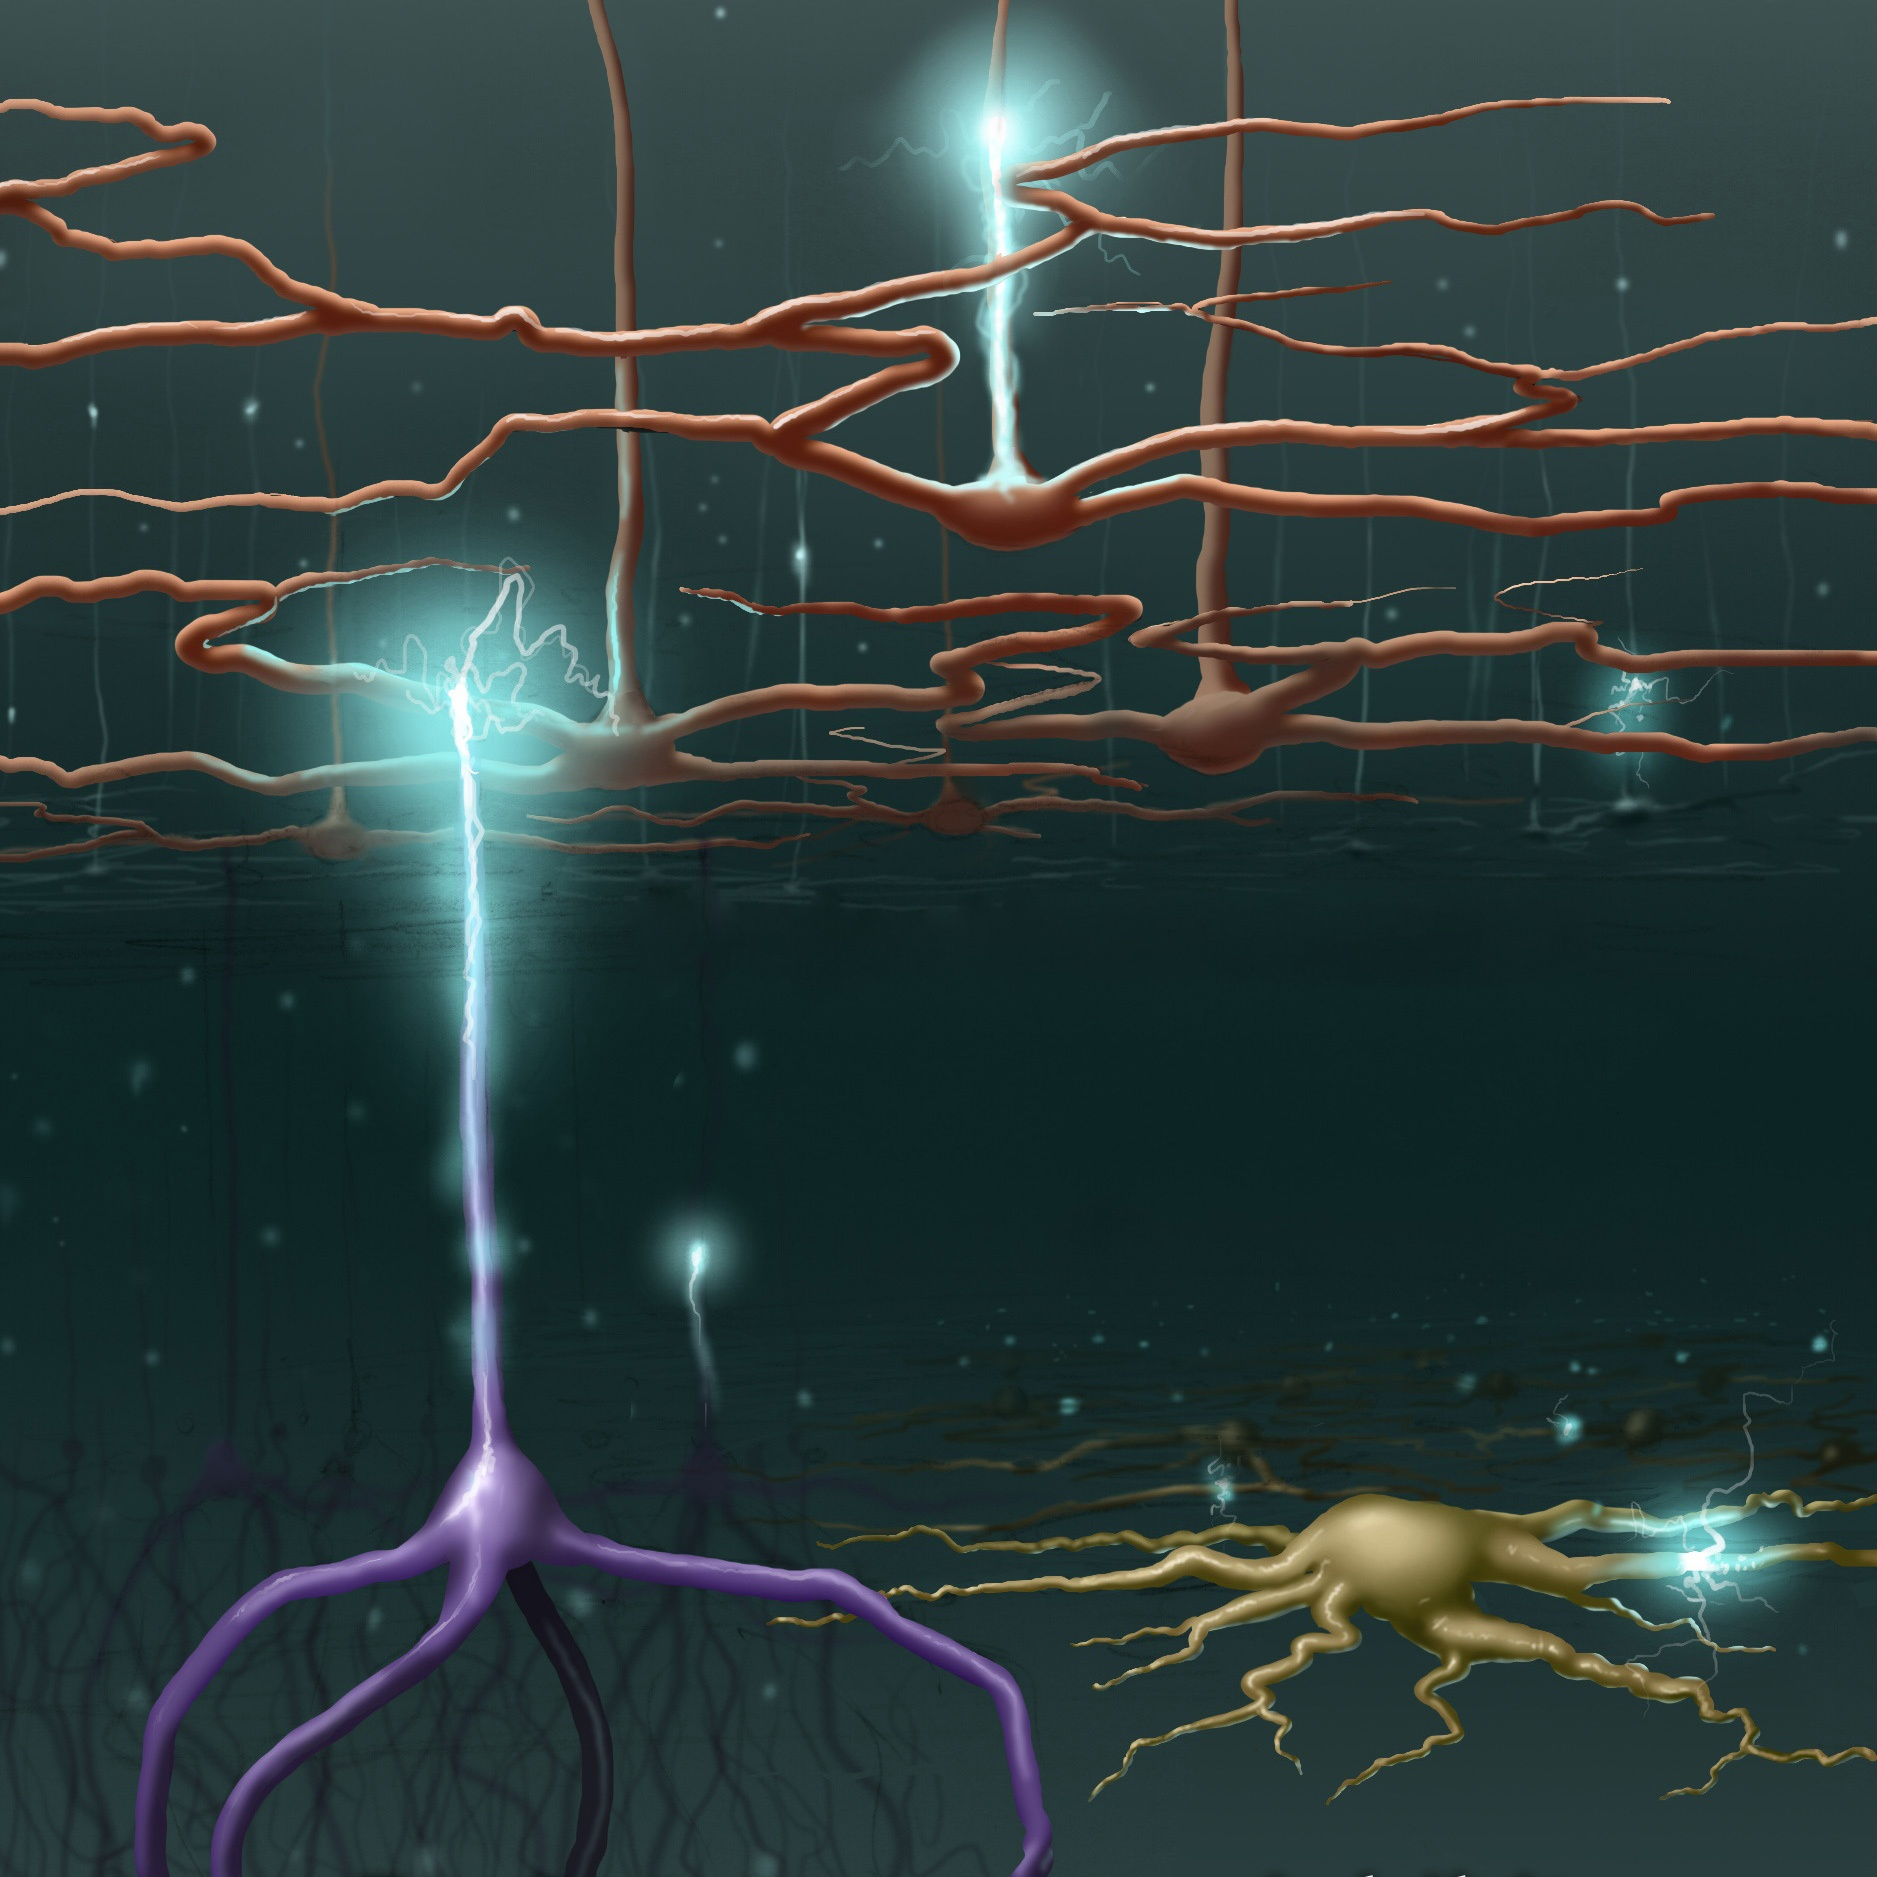 image depicting 3 types of neuron